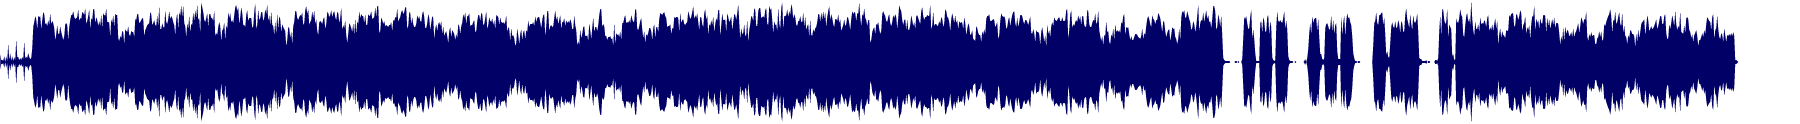 waveform of track #71062